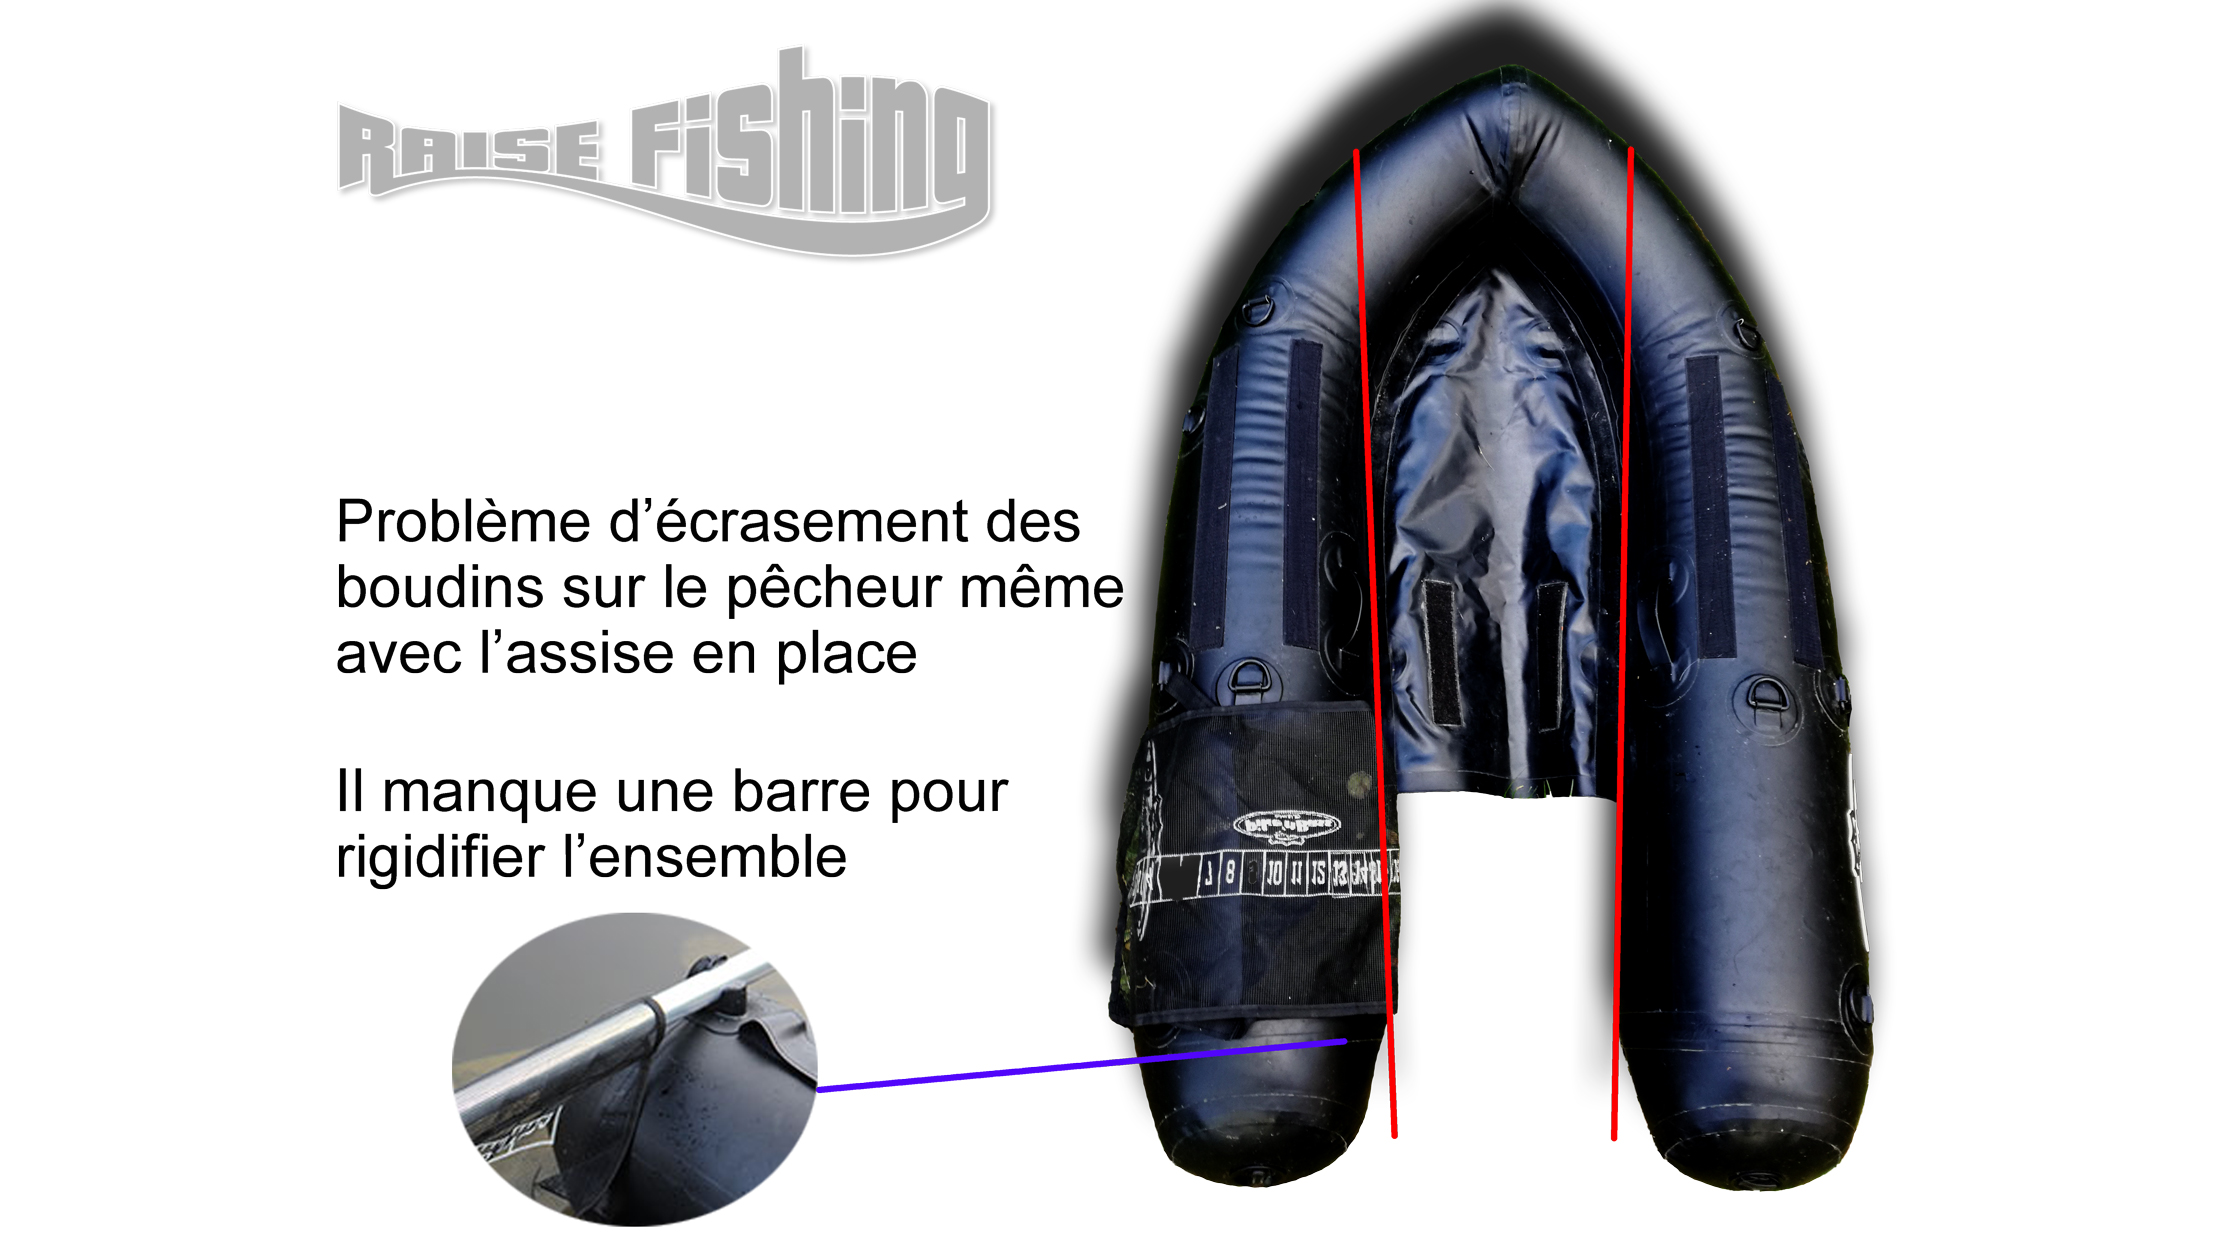 avis float tube pike'n bass amiaud